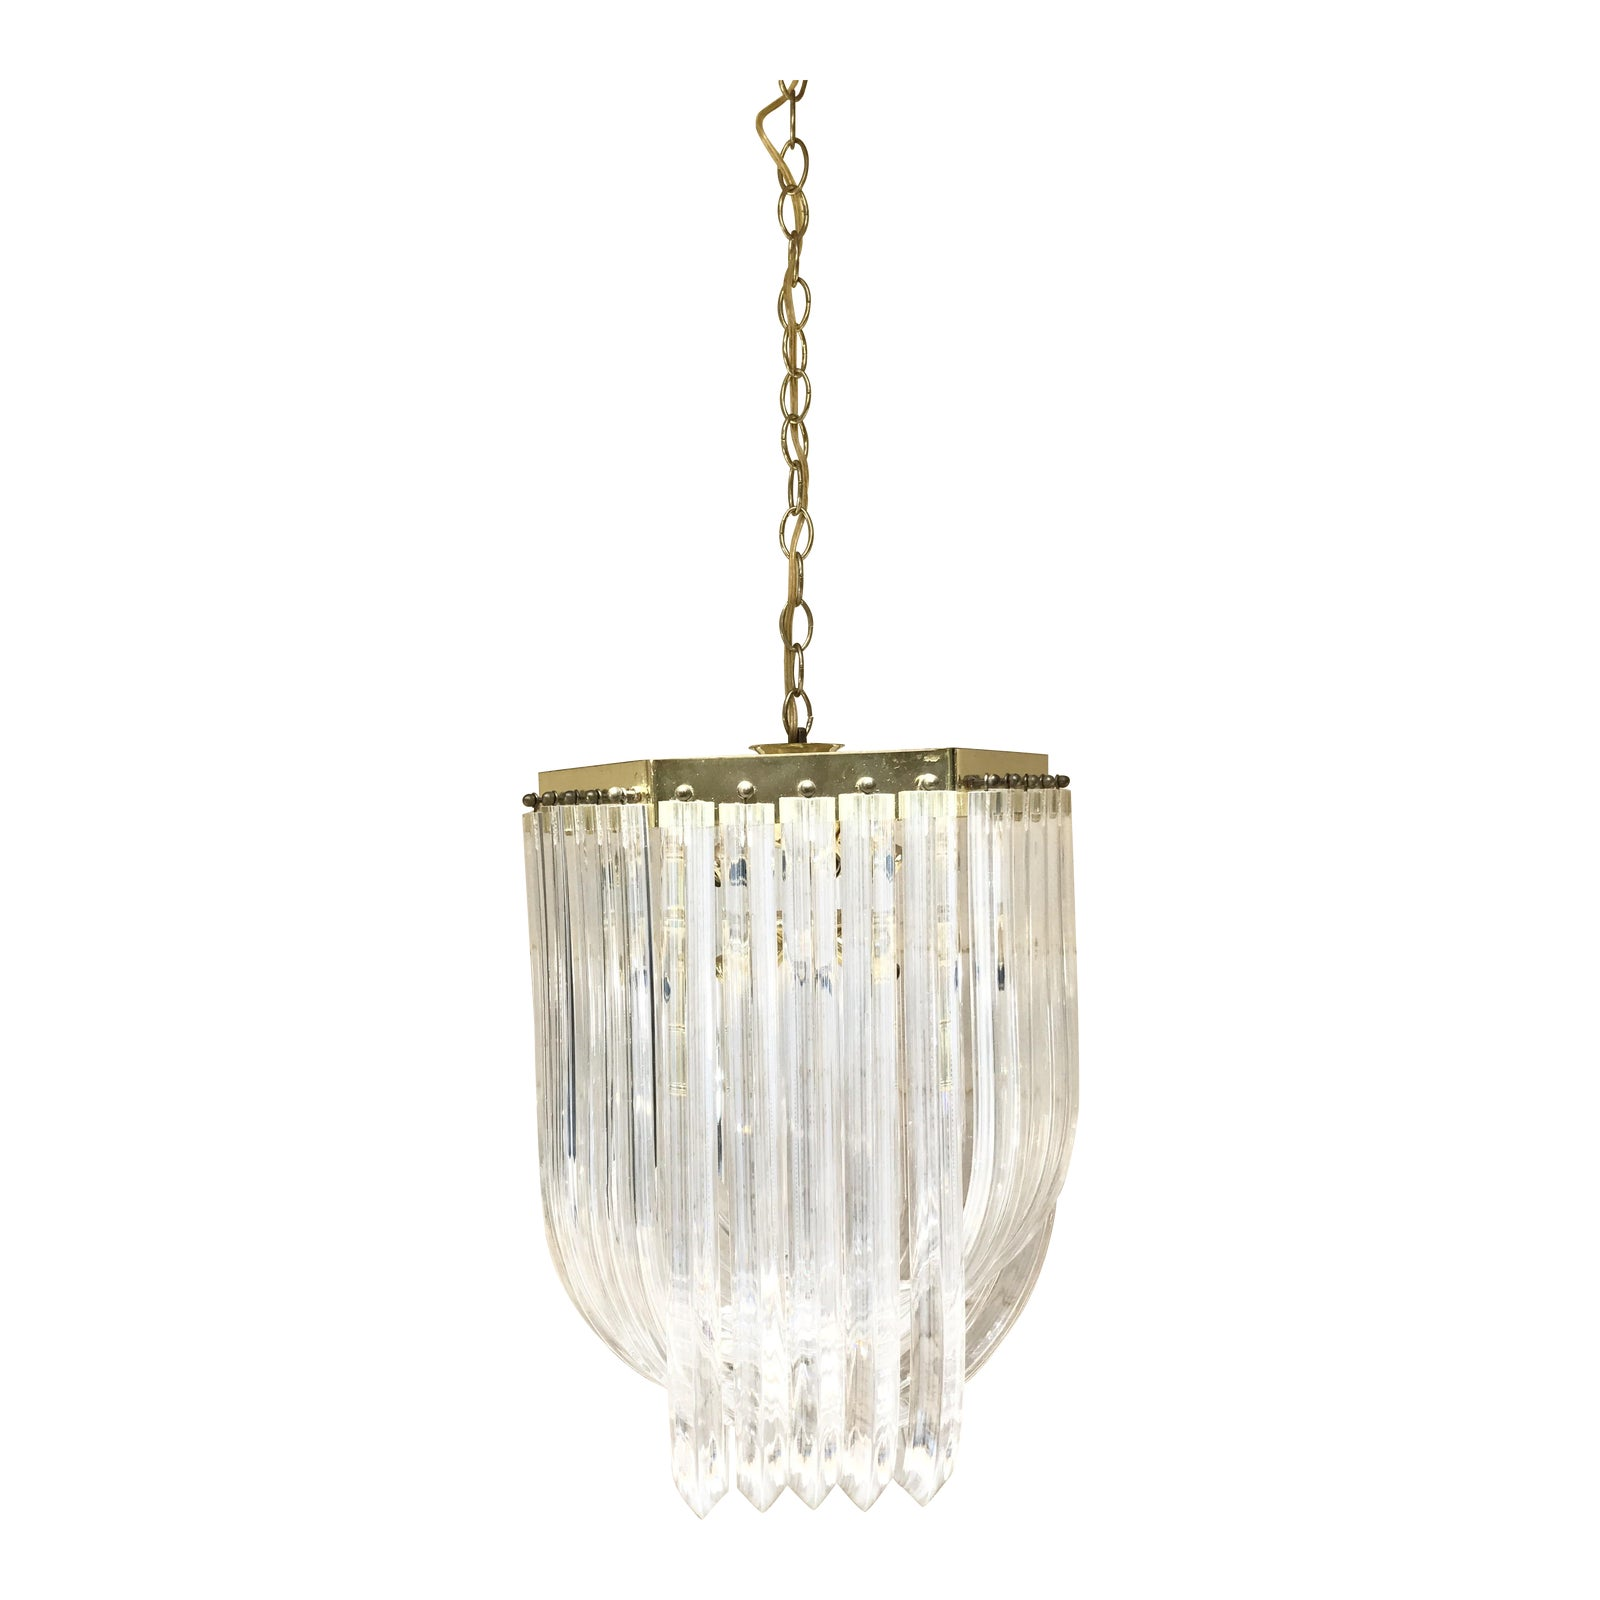 lights modern l lighting chandeliers chandelier org f sale ca at pendant lucite furniture id for